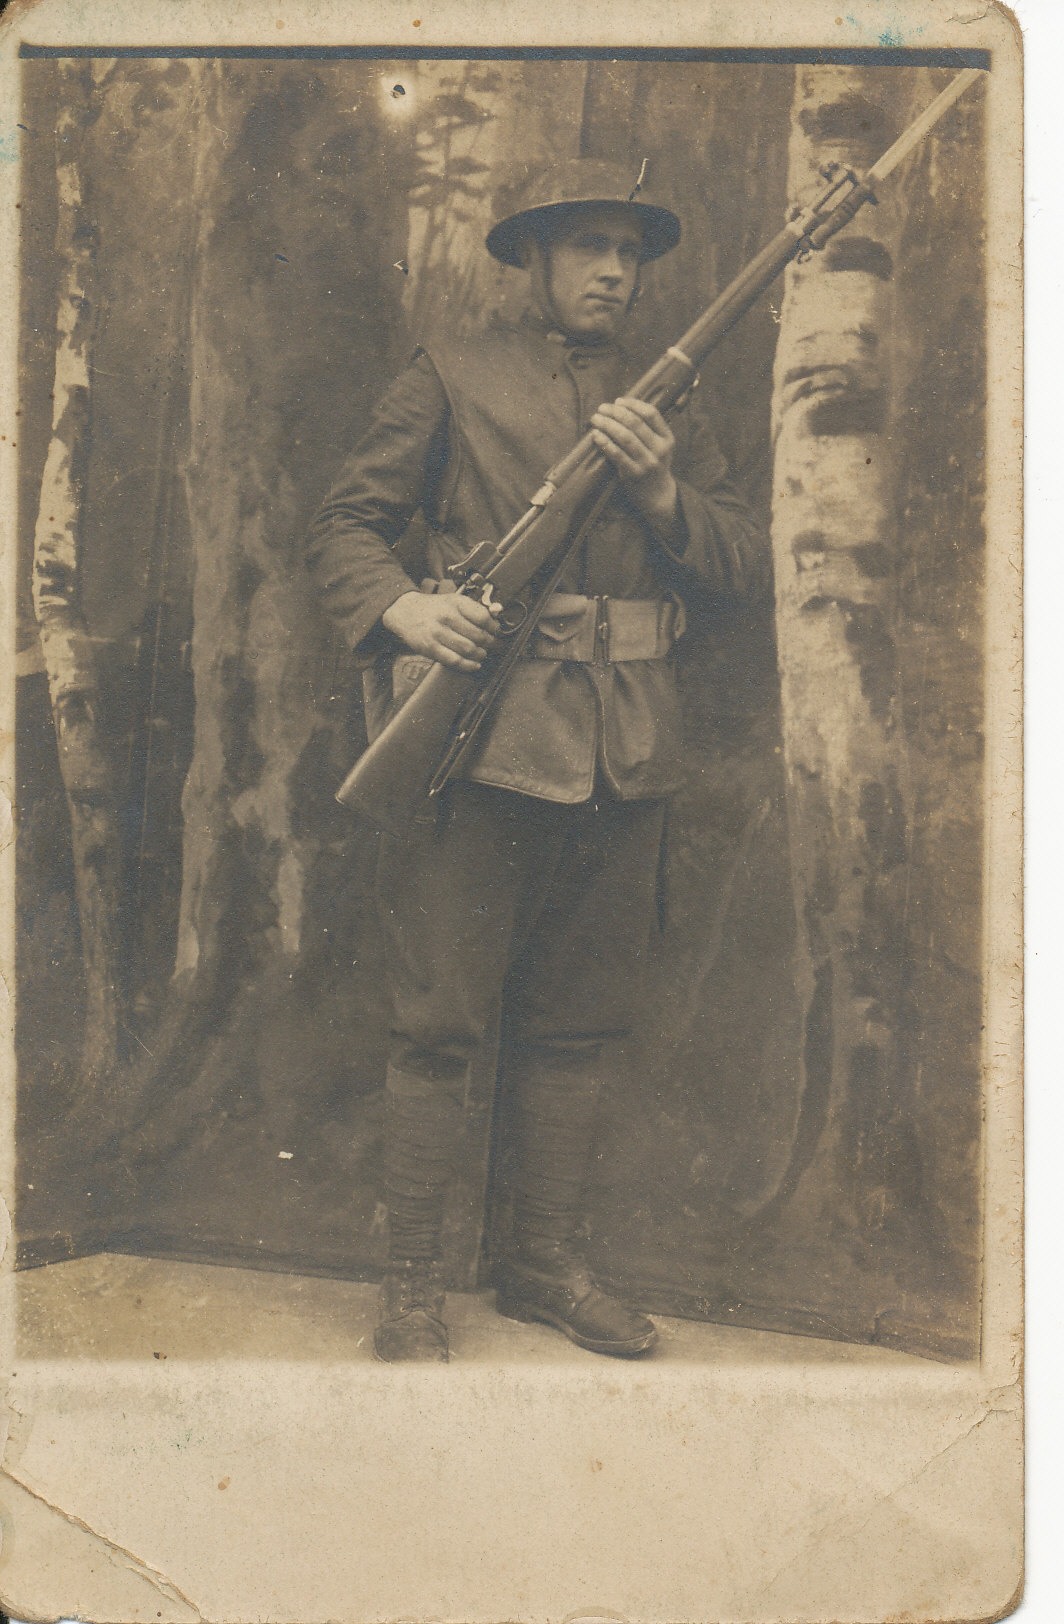 black and white portrait of man in uniform standing holding a gun